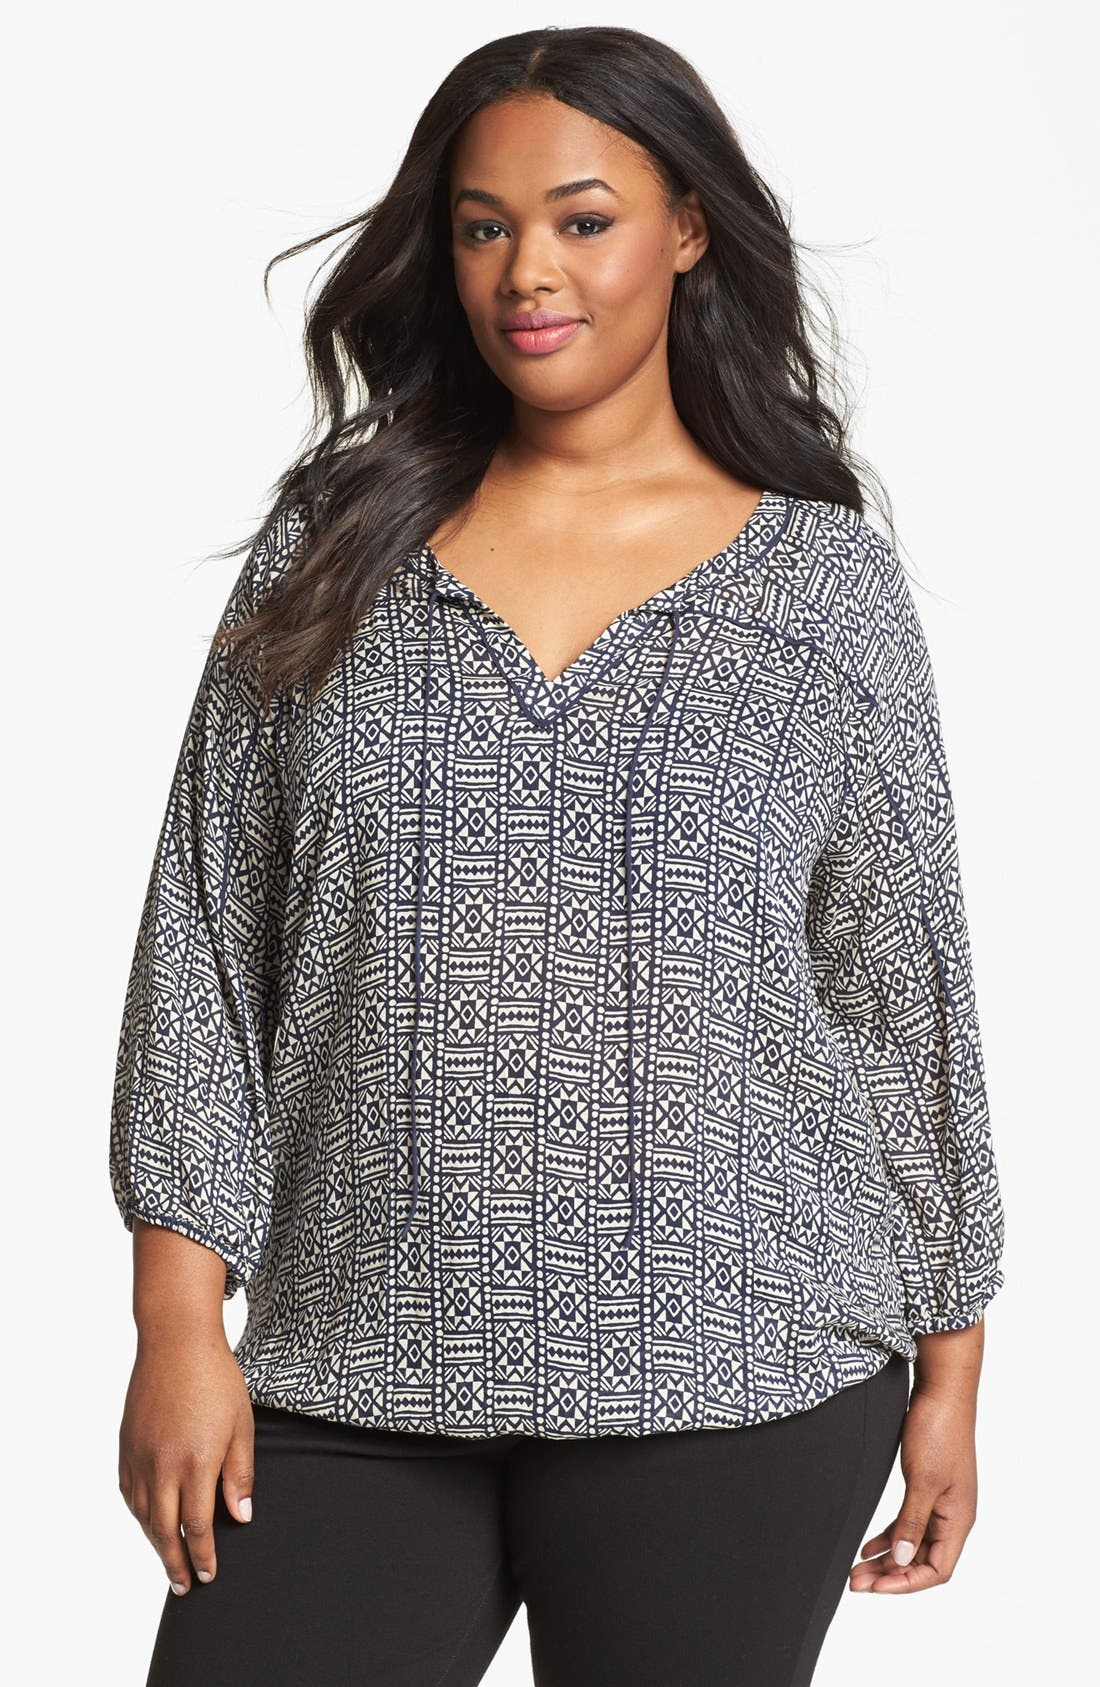 Alternate Image 1 Selected - Lucky Brand 'John Robshaw - Joplin' Print Peasant Top (Plus Size)